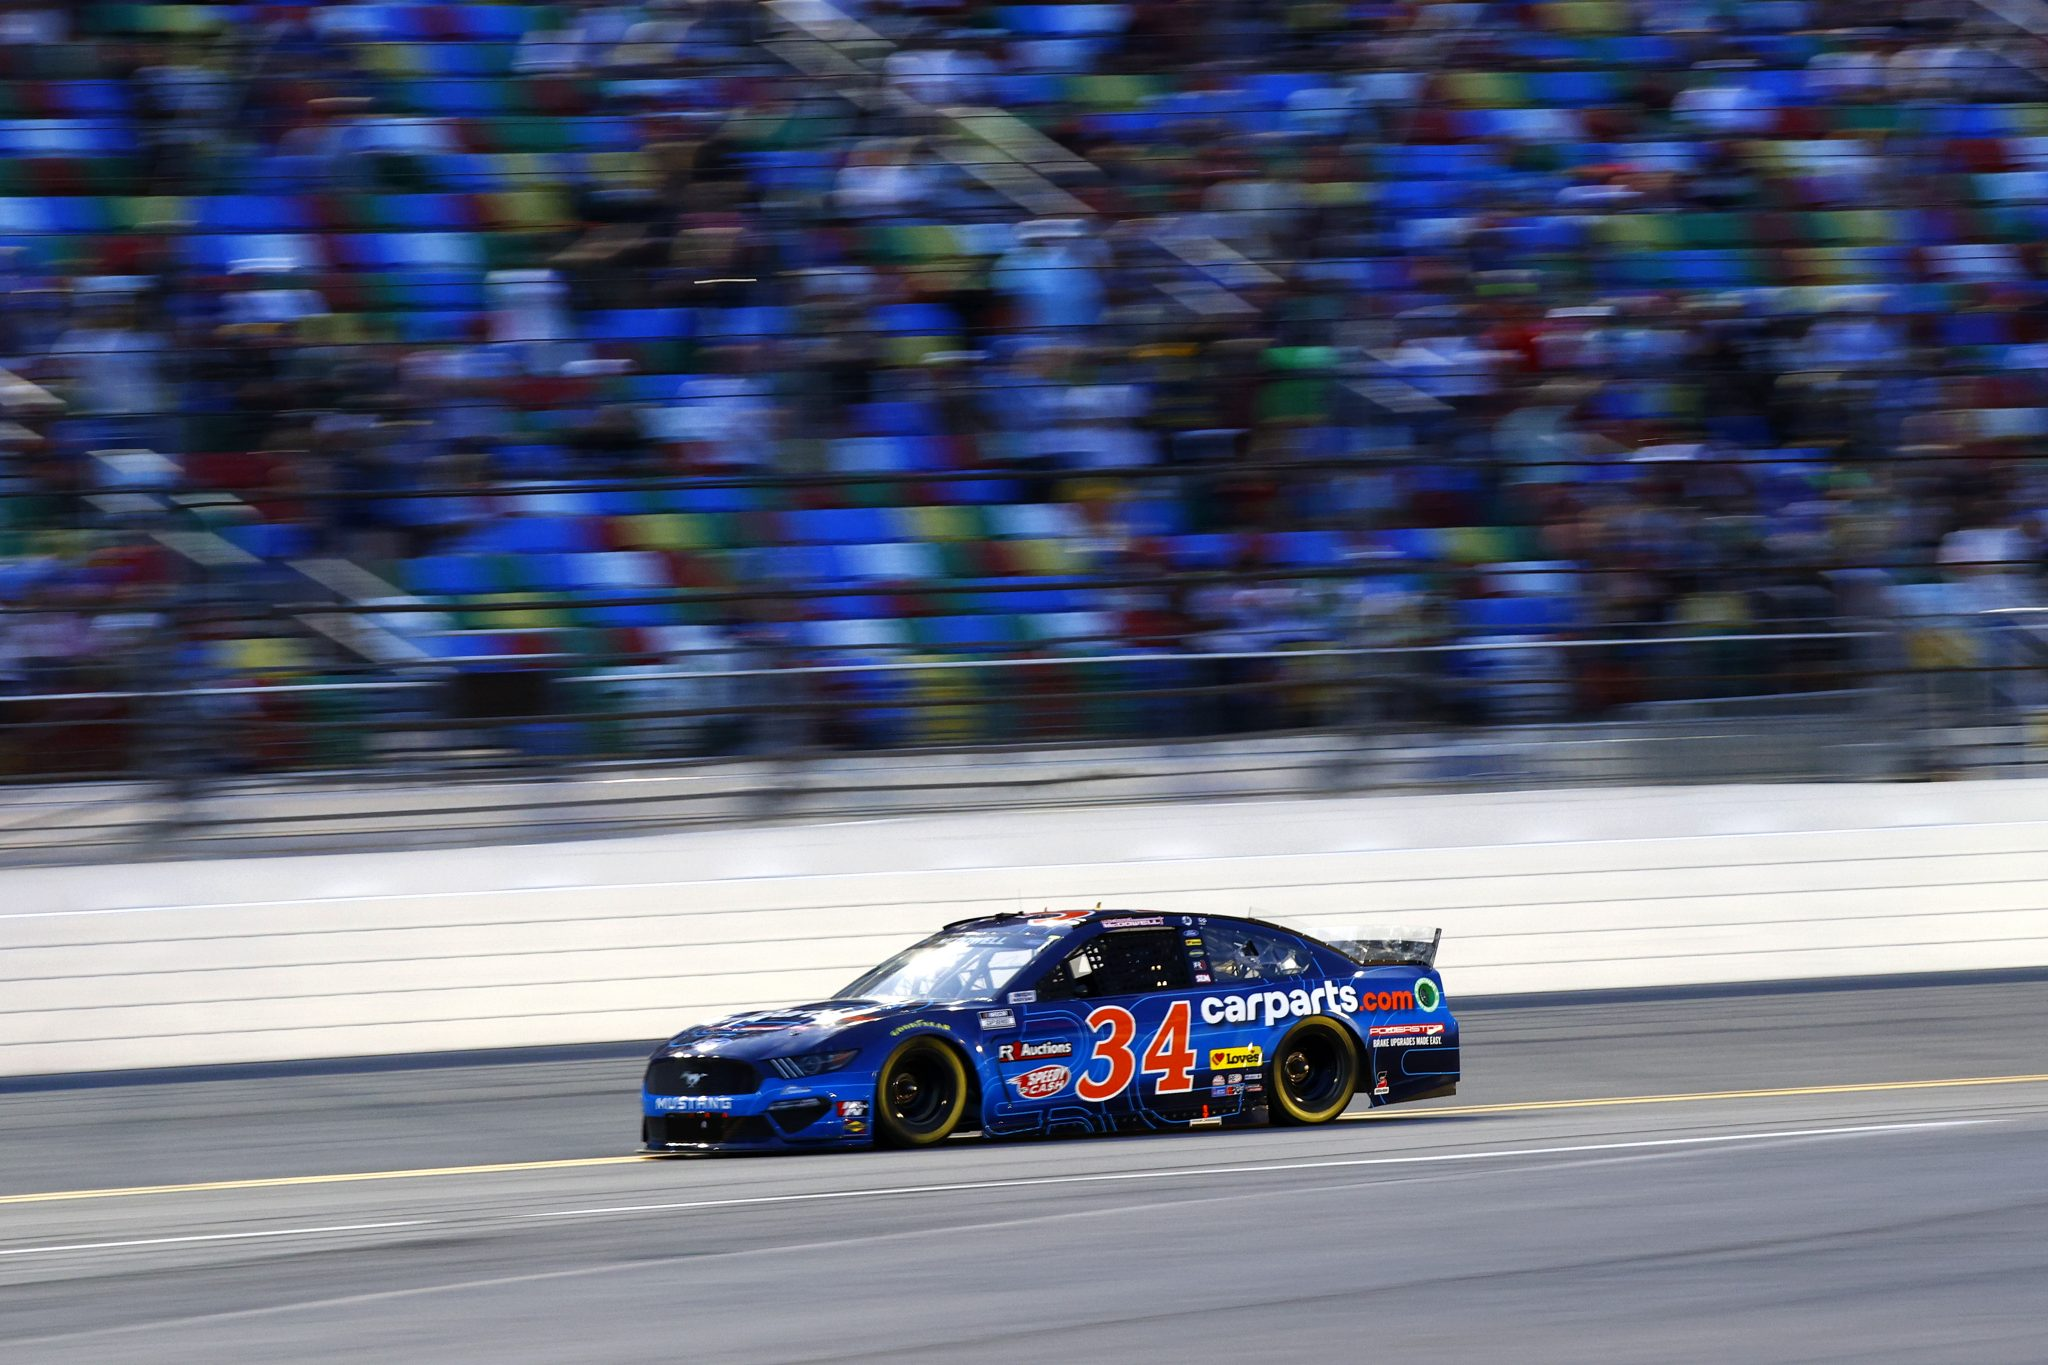 DAYTONA BEACH, FLORIDA - AUGUST 28: Michael McDowell, driver of the #34 CarParts.com Ford, drives during the NASCAR Cup Series Coke Zero Sugar 400 at Daytona International Speedway on August 28, 2021 in Daytona Beach, Florida. (Photo by Jared C. Tilton/Getty Images) | Getty Images